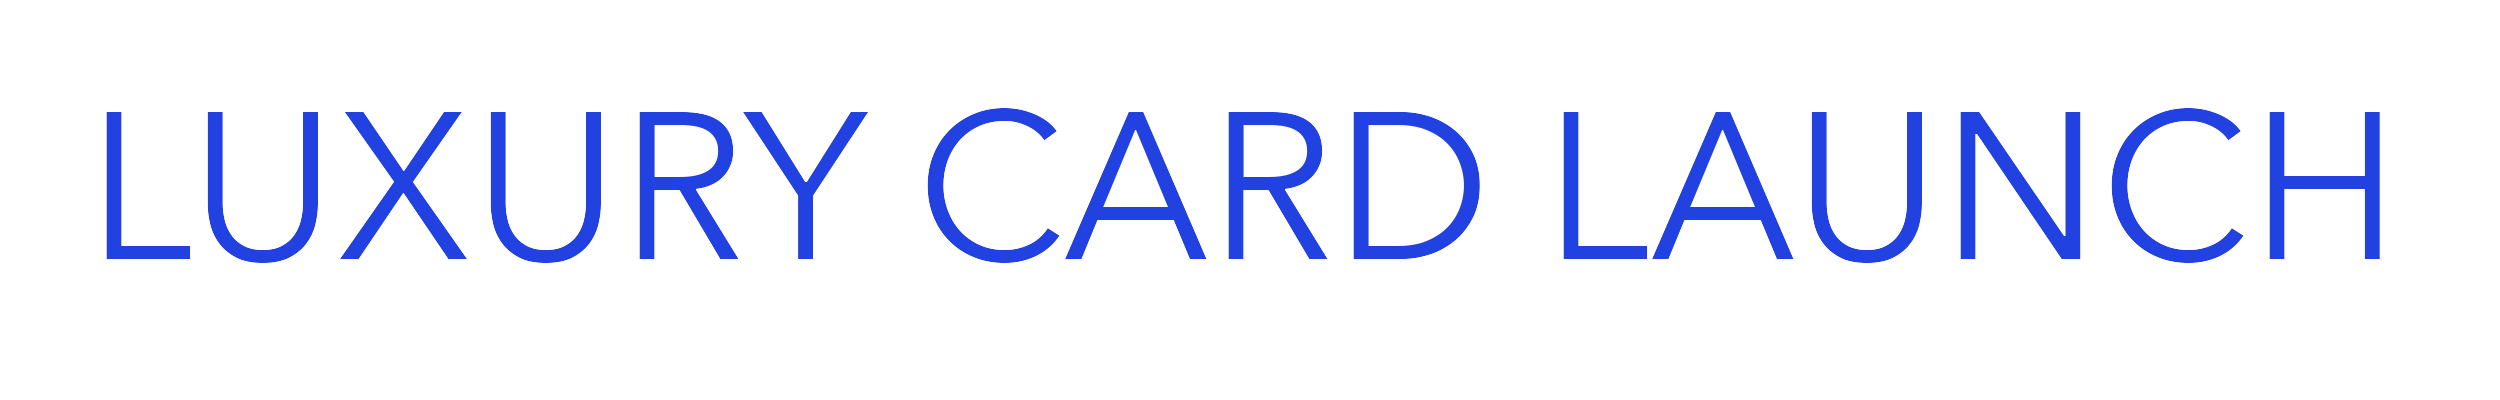 LUXURY-CARD-LAUNCH--PROJECT.png